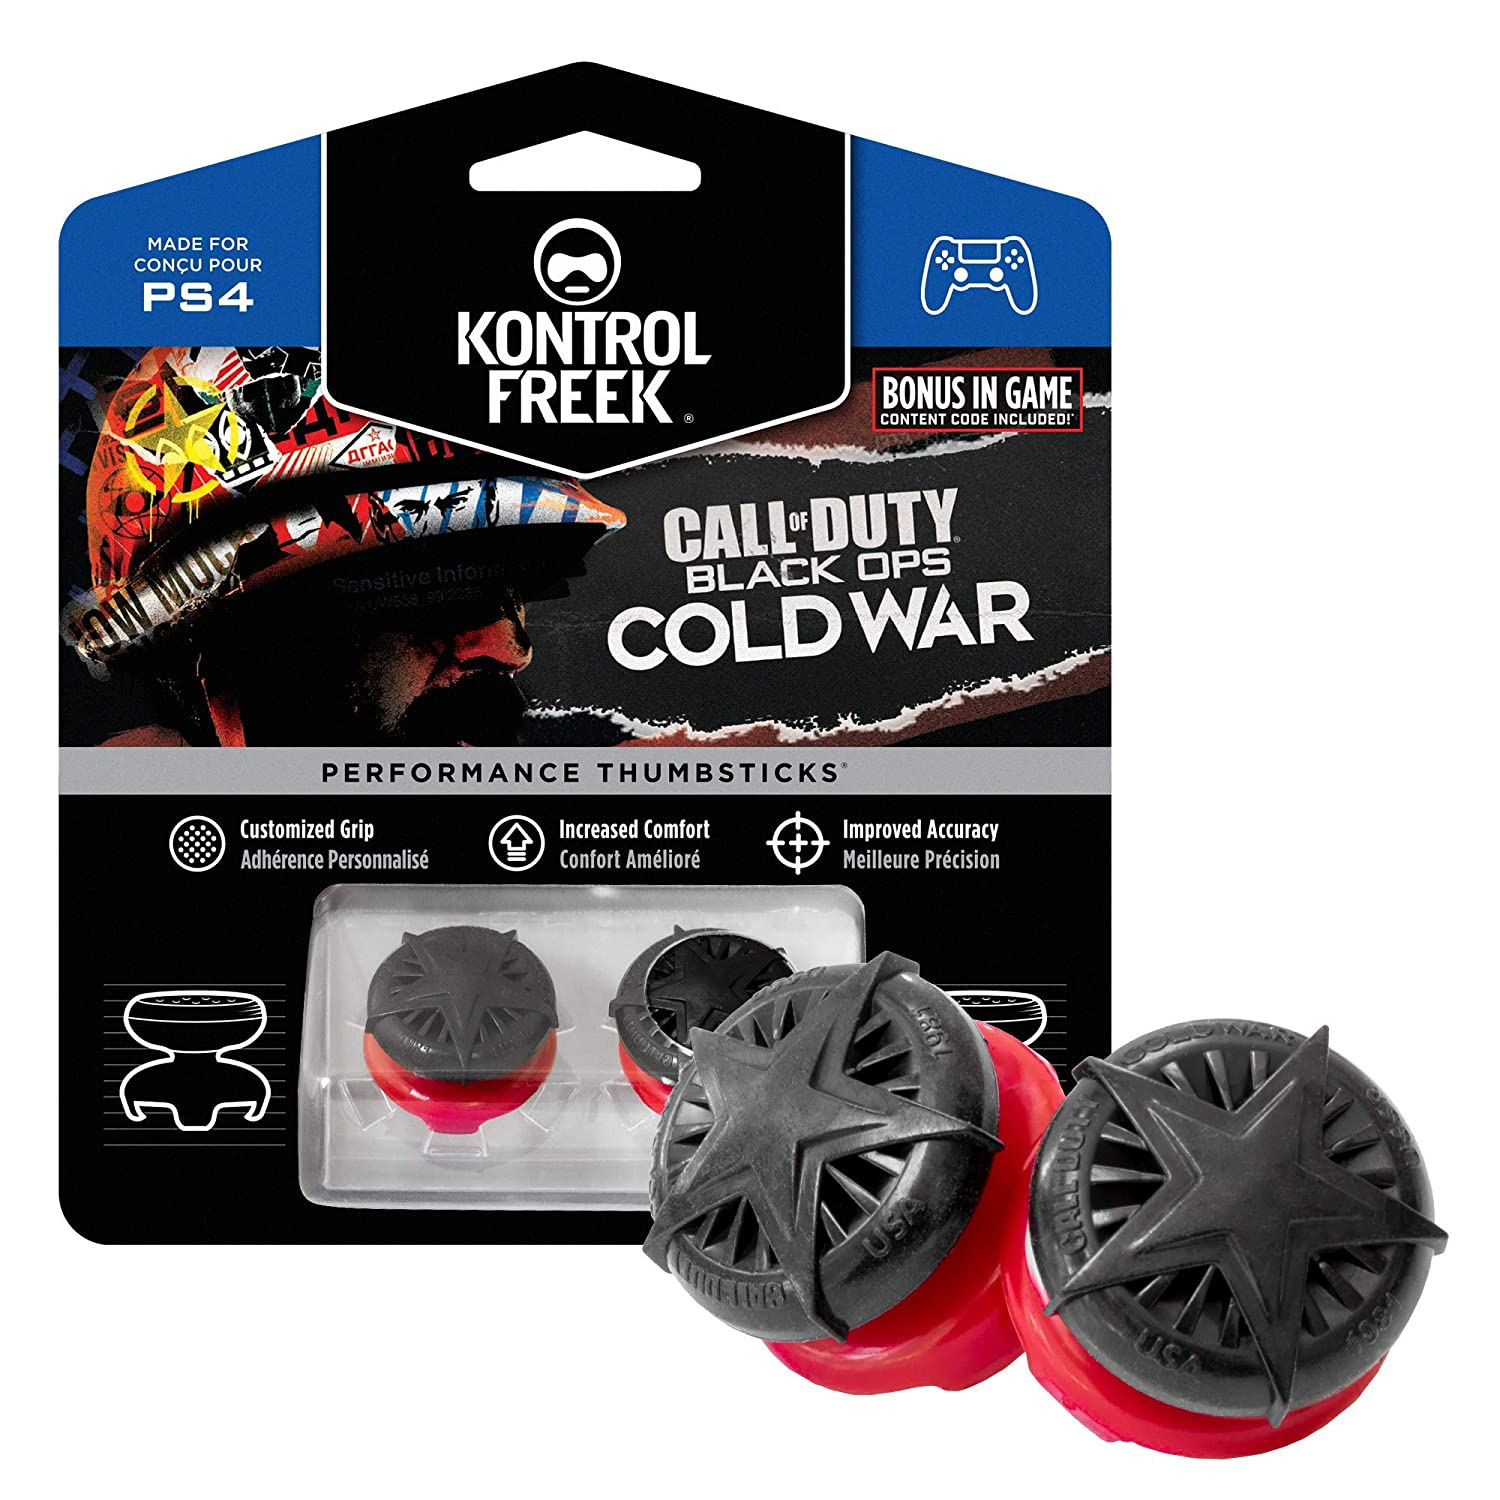 A look at both of the KontrolFreek grips in their packaging.